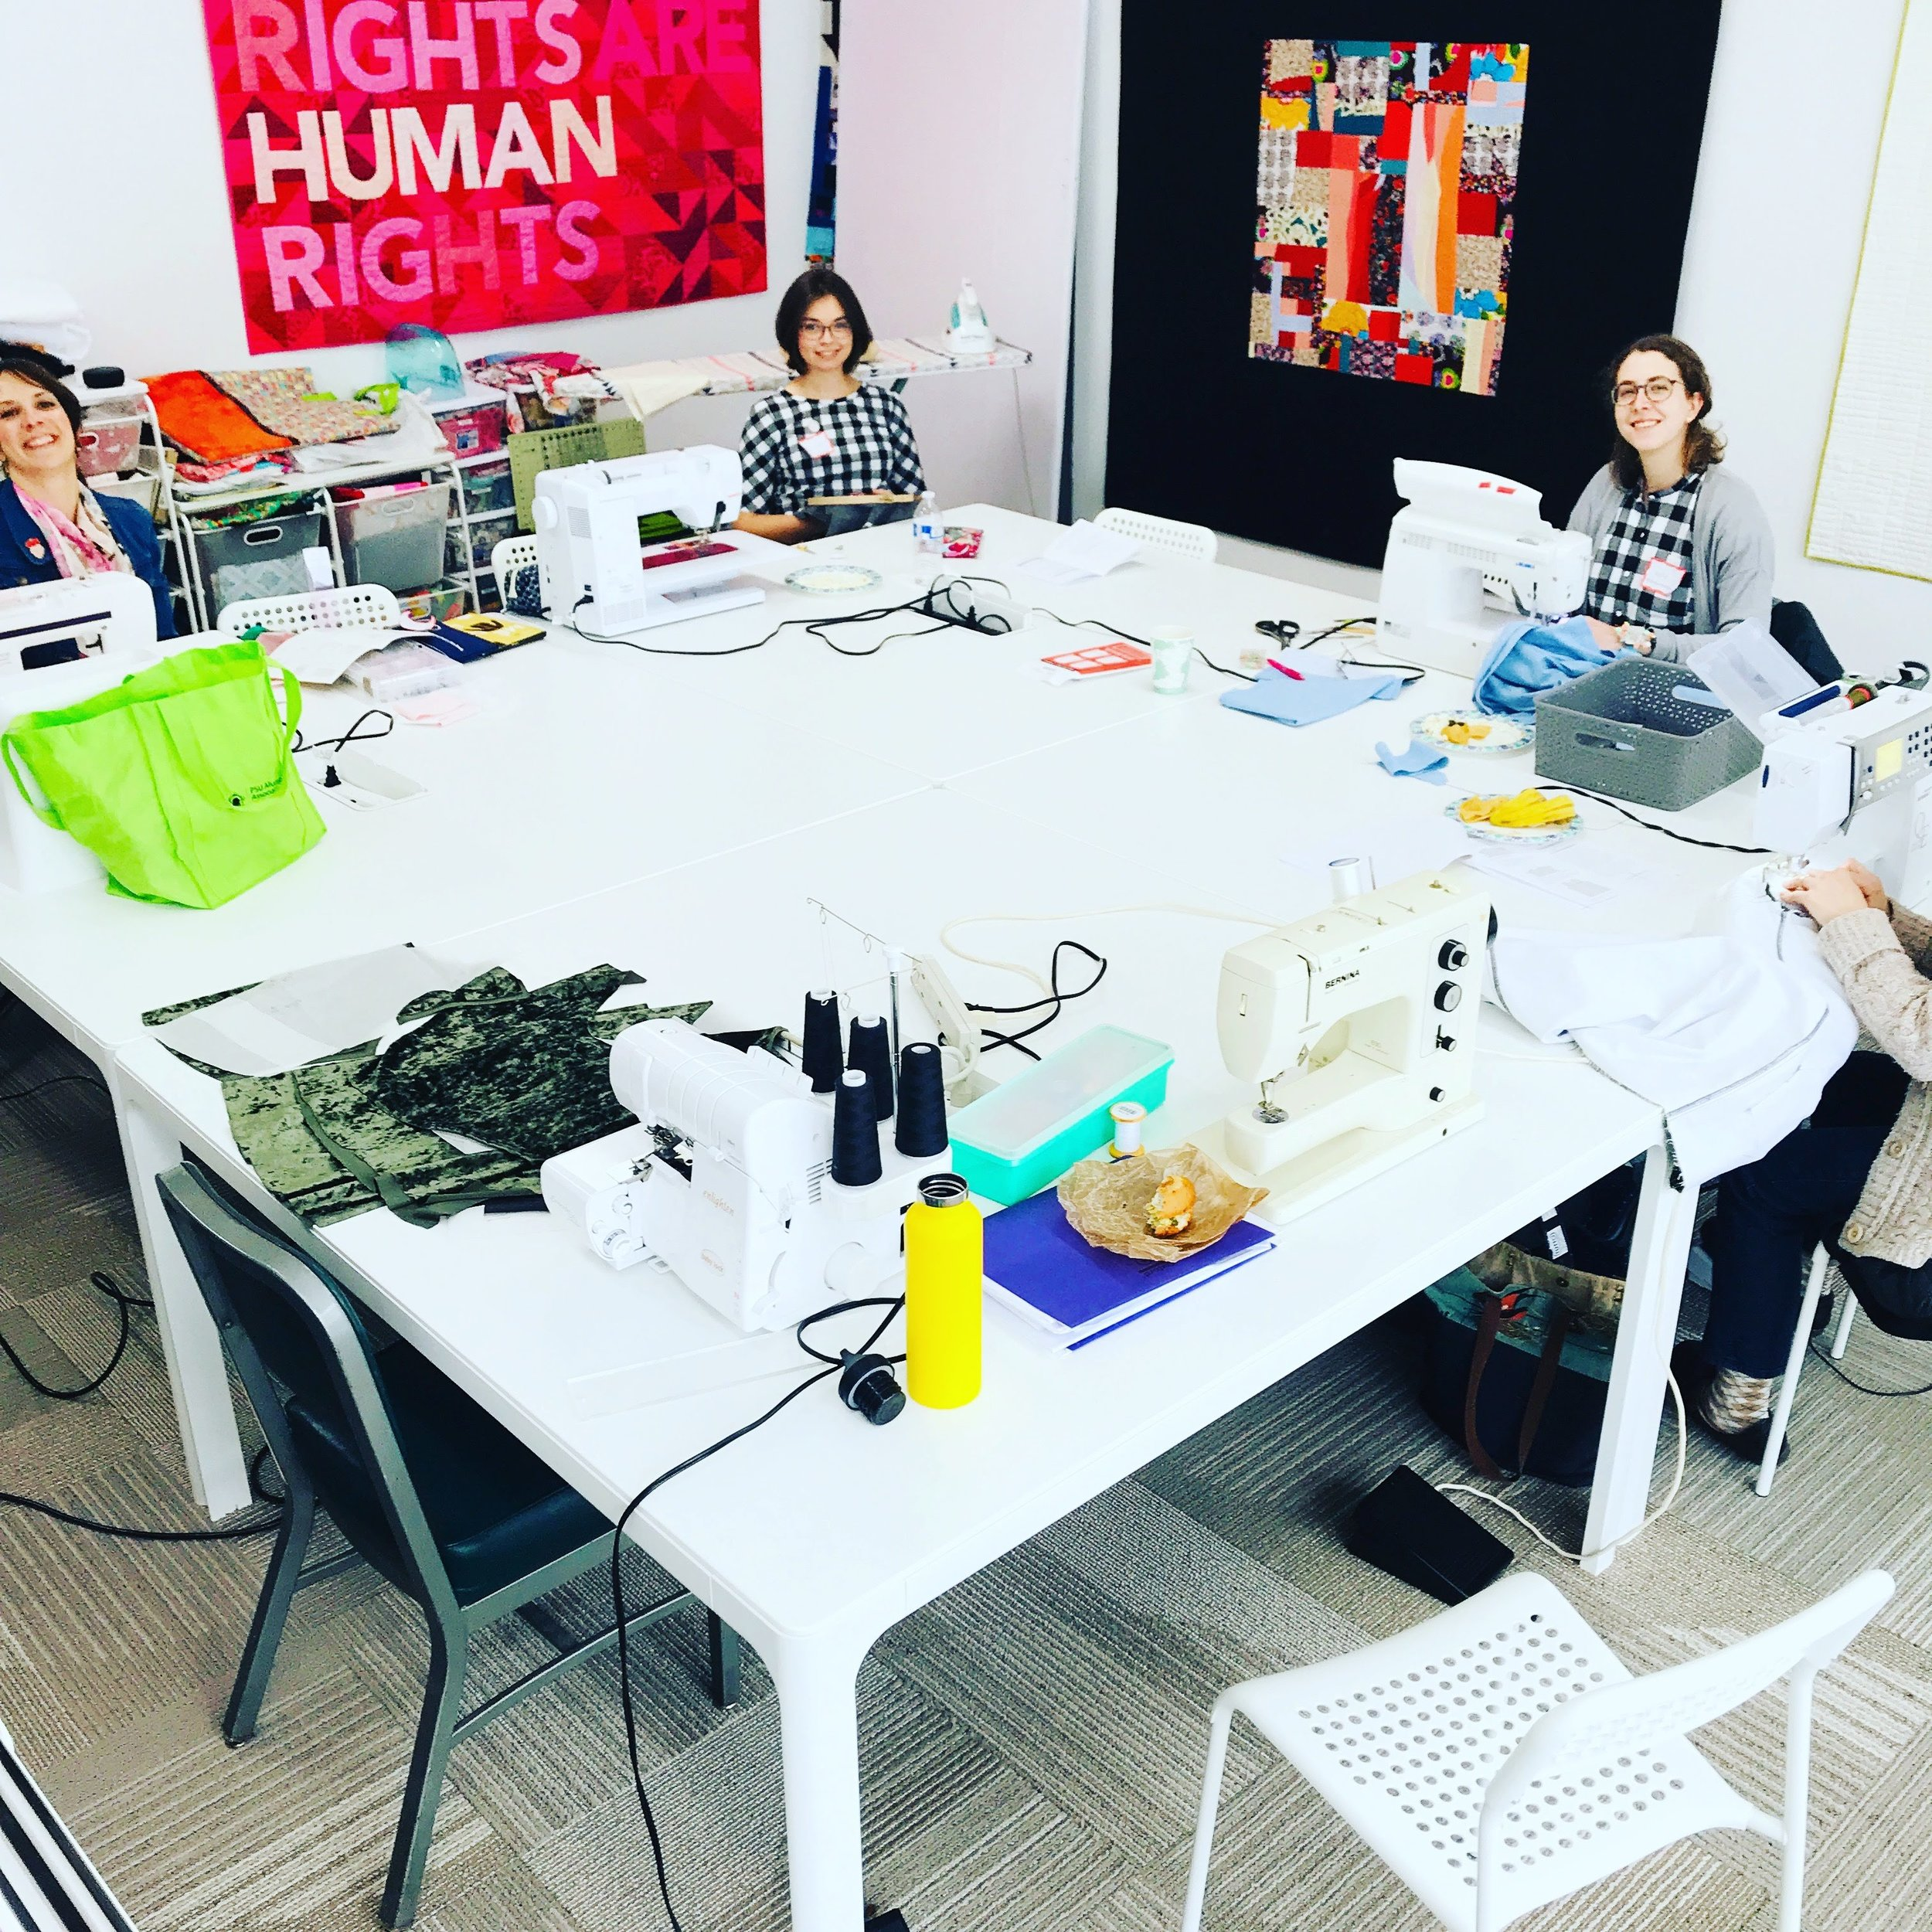 The Twin Cities Sewists held a Sew Day at Field Trip Quilting Studio